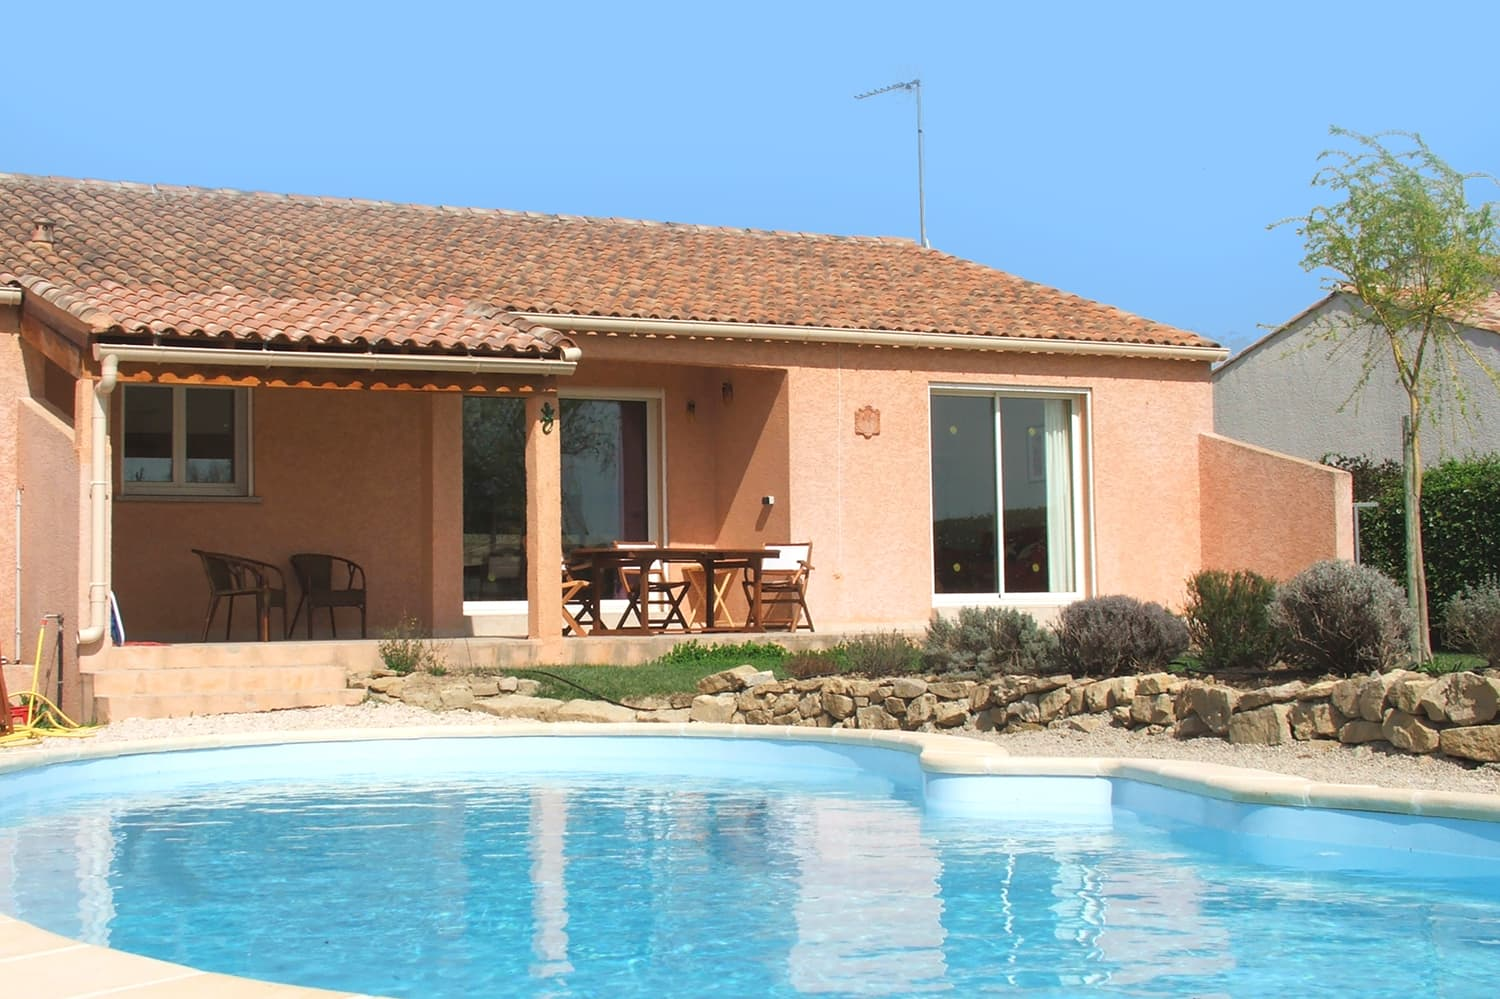 Vacation villa in Languedoc with private pool